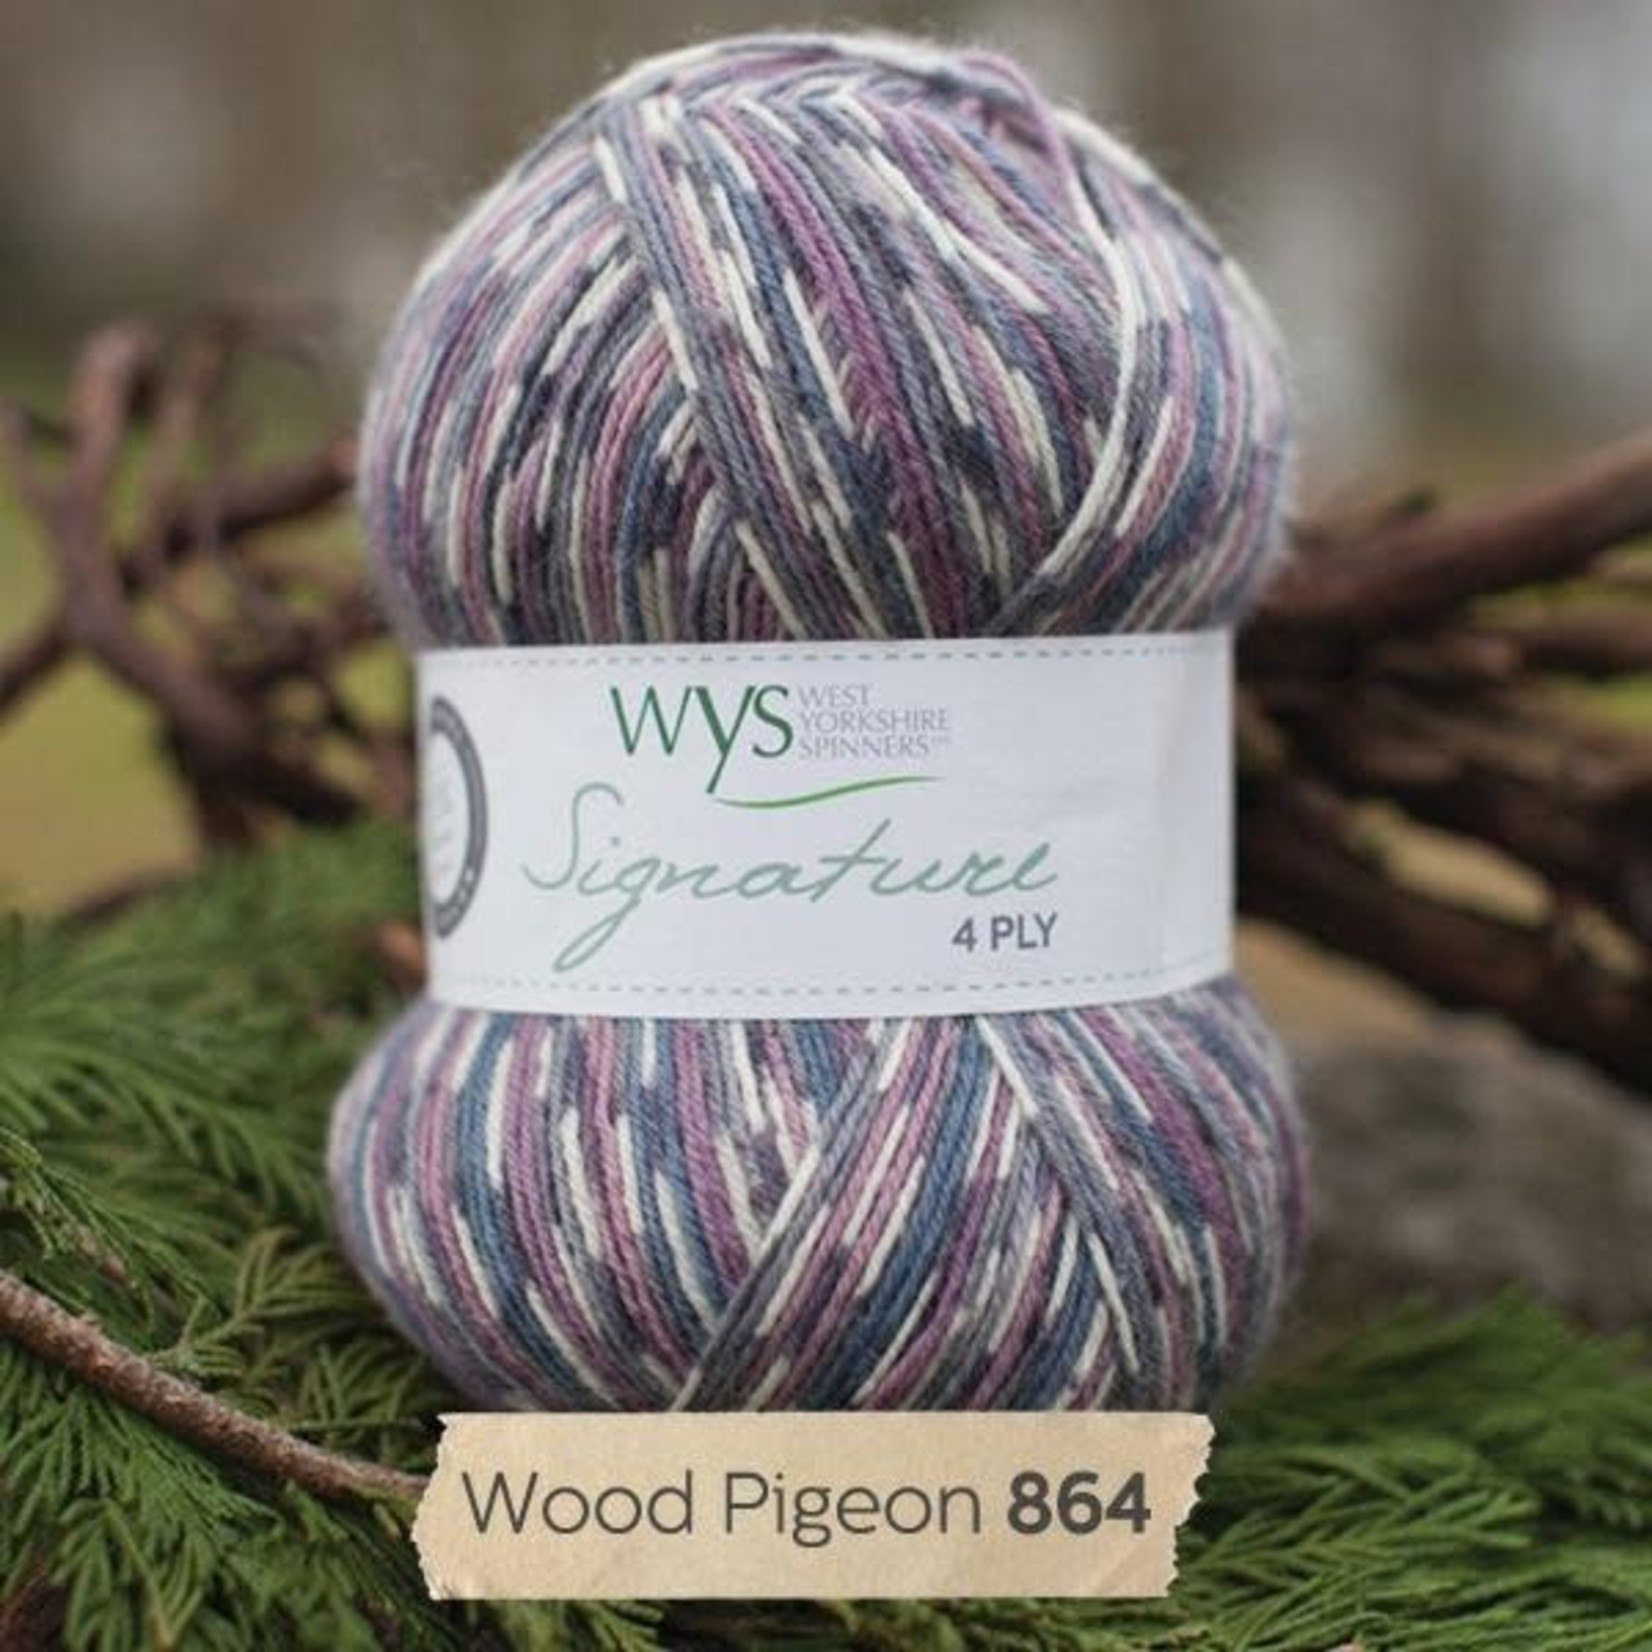 "West Yorkshire Spinners Signature 4ply ""Country Birds Collection"" by West Yorkshire Spinners"